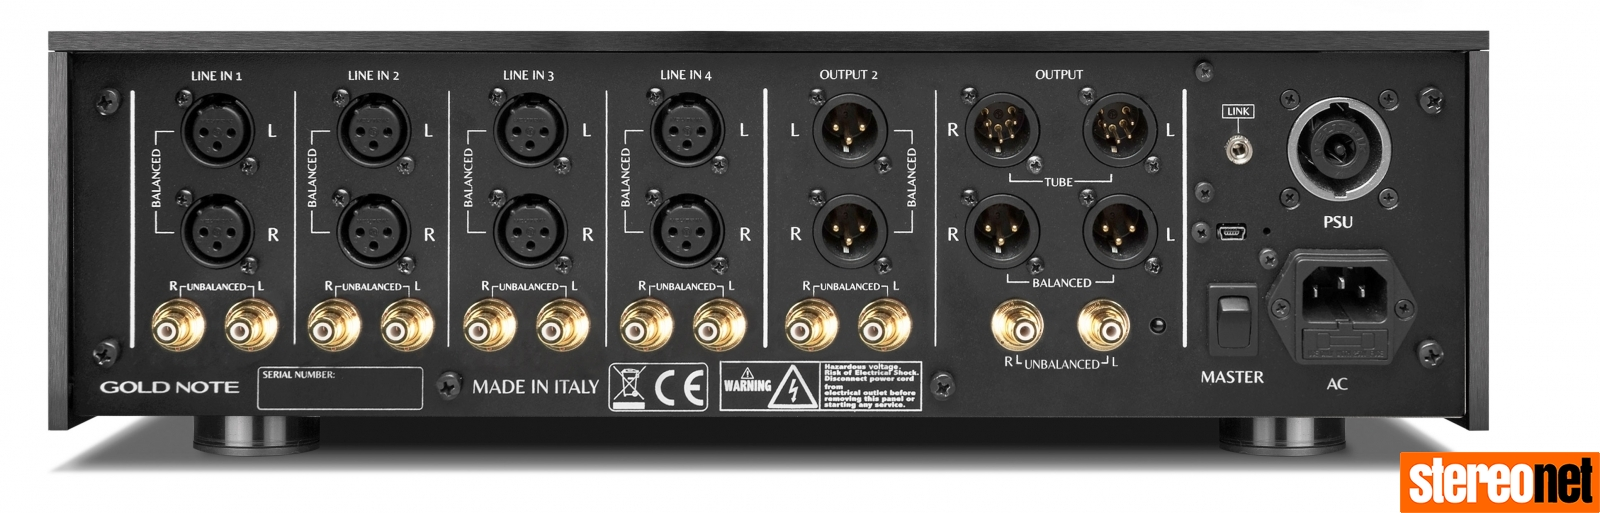 Gold Note P-1000 MkII preamp